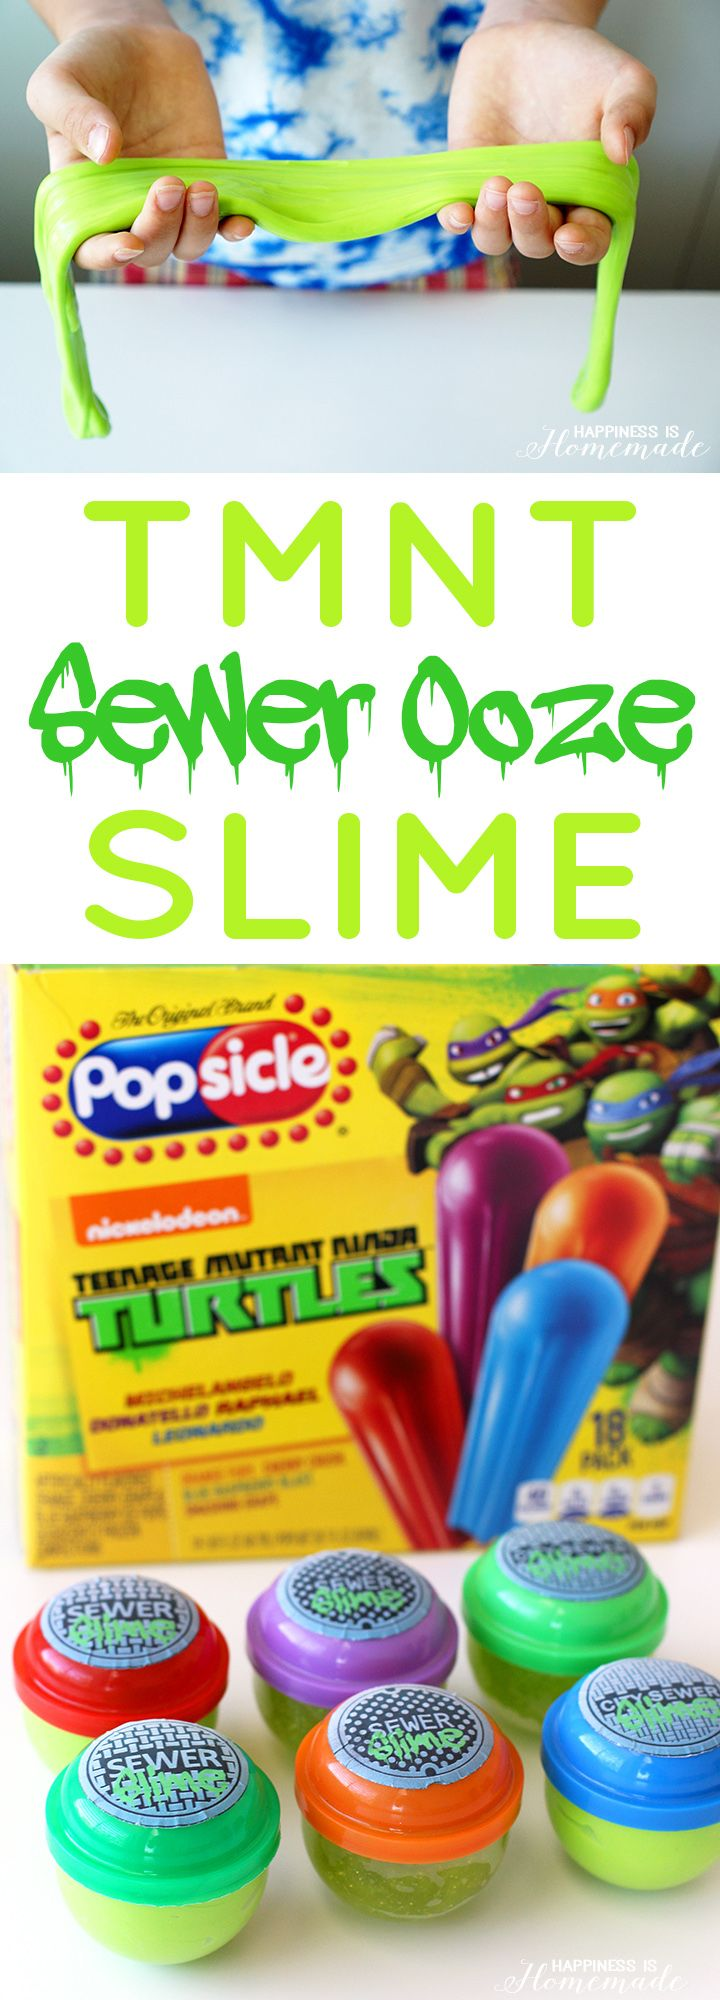 TMNT Sewer Ooze Slime + More Fun! Great ideas for a Teenage Mutant Ninja Turtle party! - Happiness is Homemade + @Popsicle #OriginalPopsicle #ad